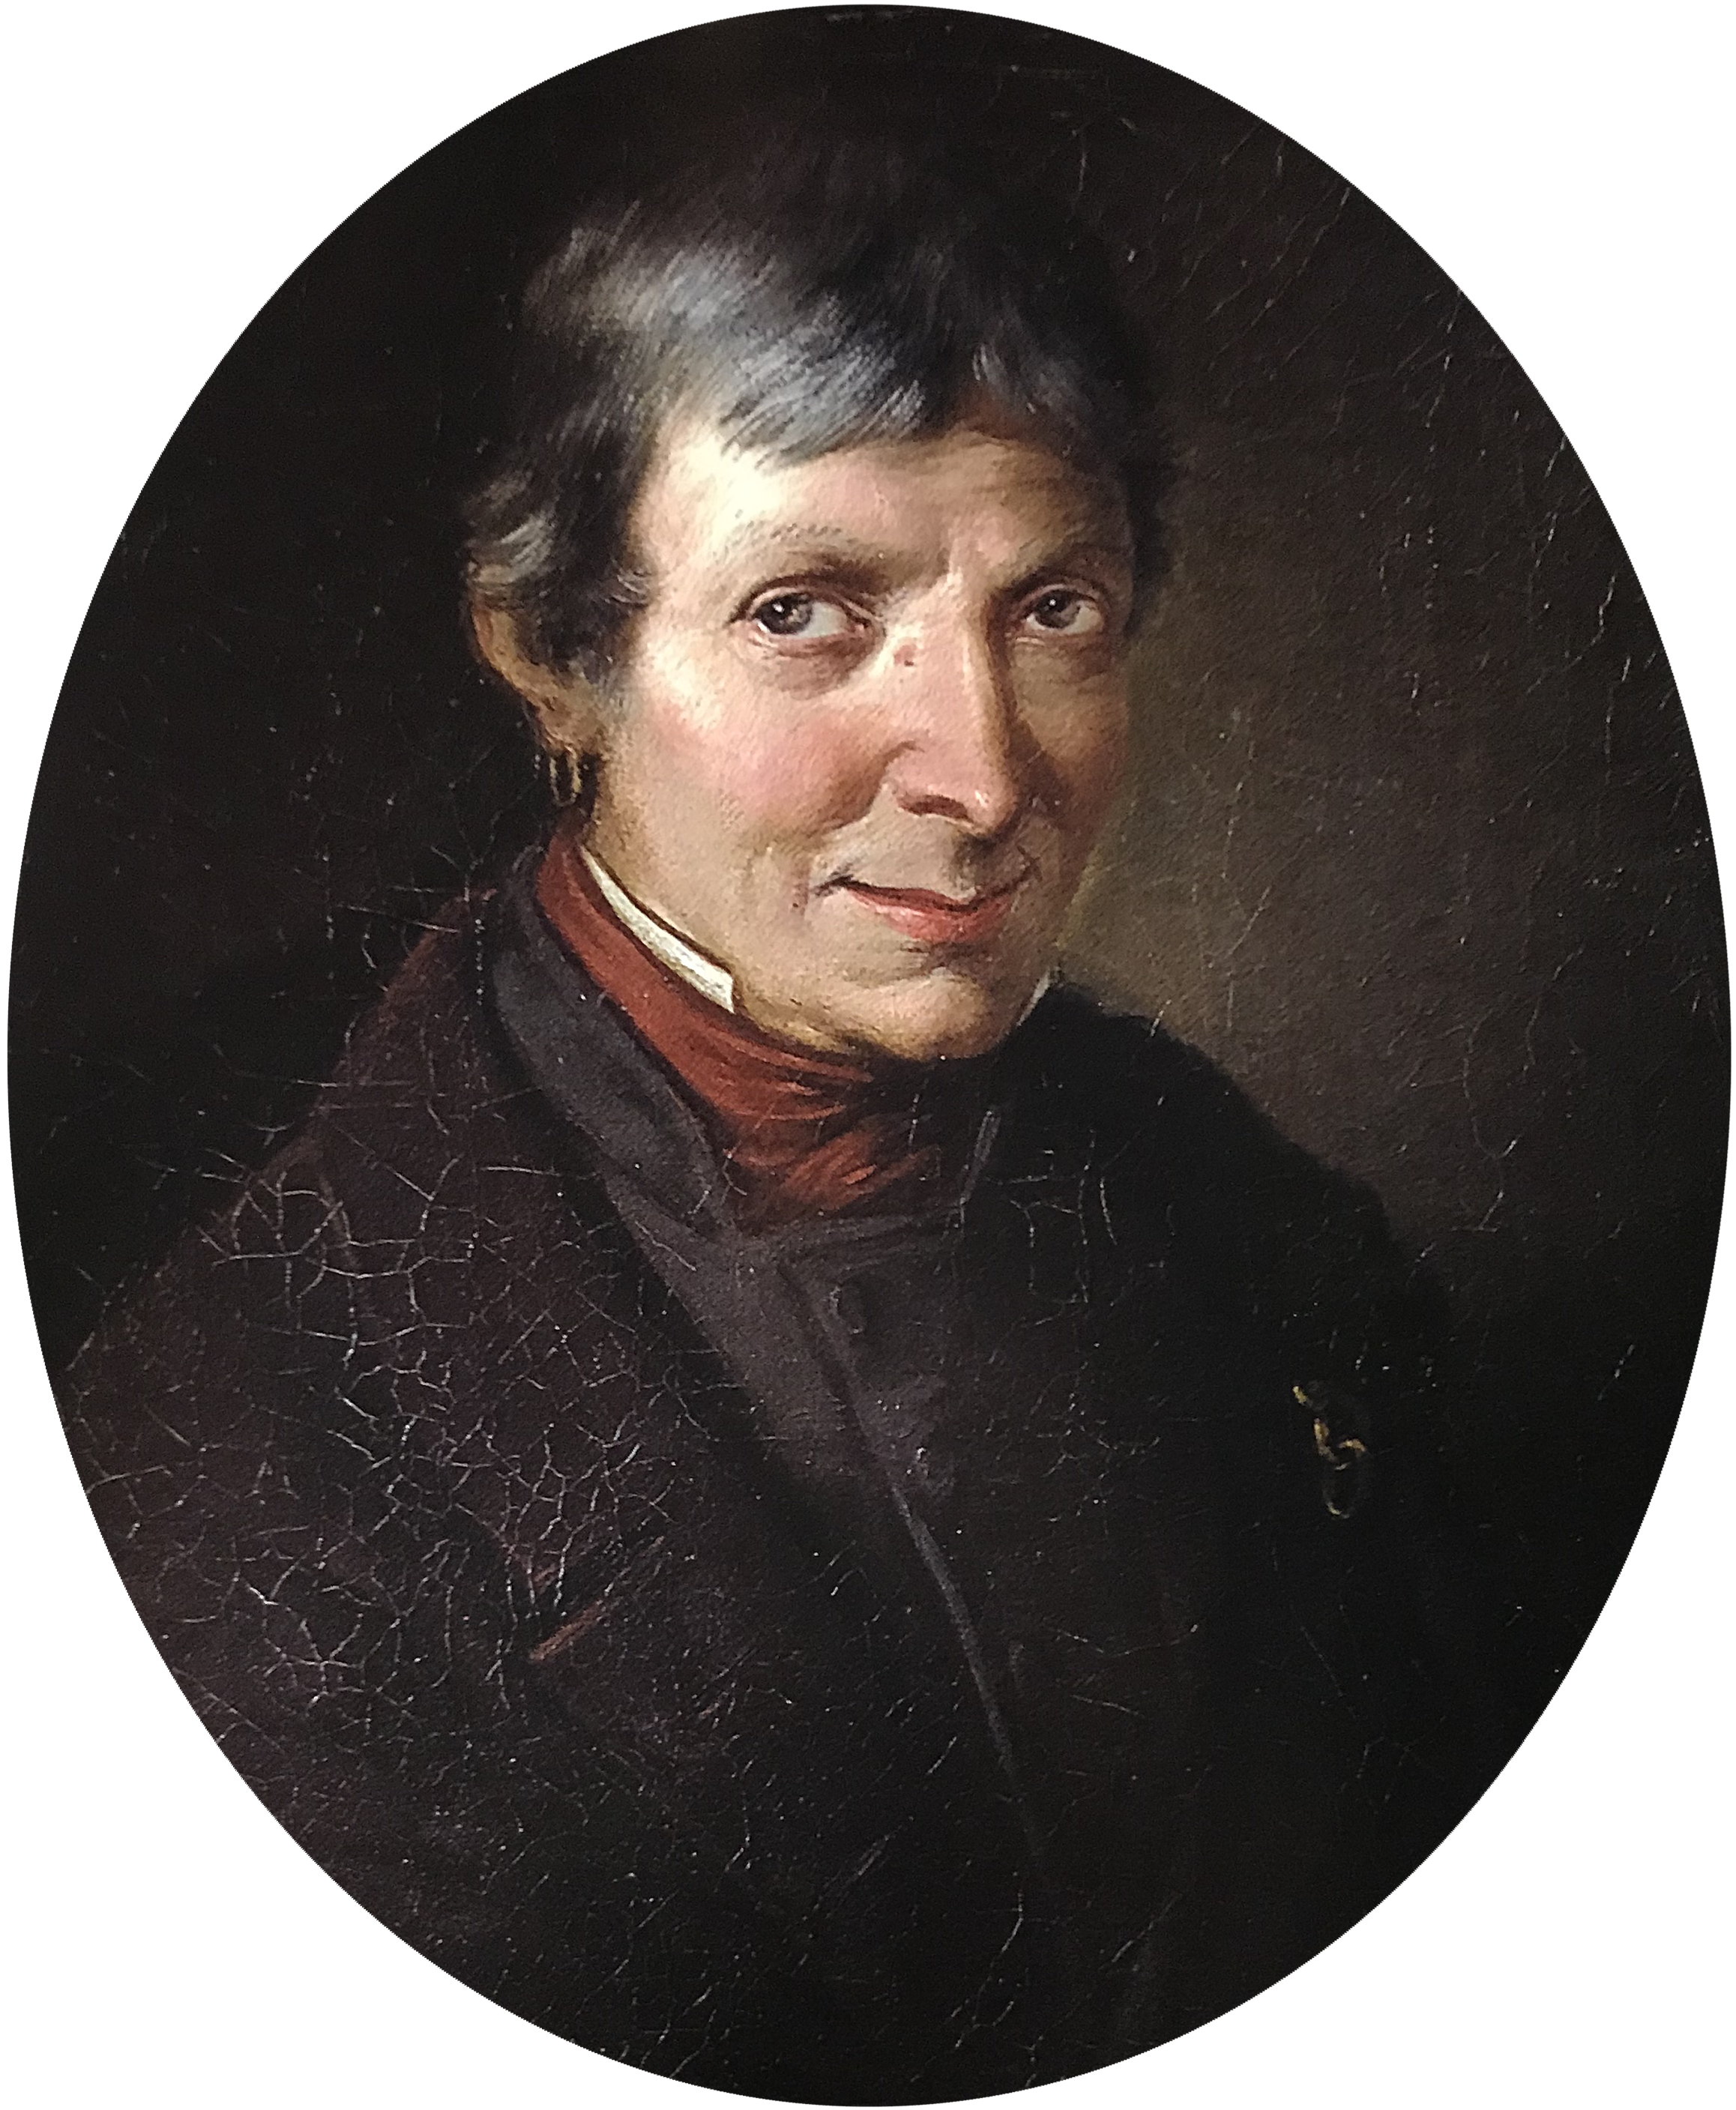 BENARDINO ROSSI, Portrait of Giuseppe Molinari, 1857, Oil on canvas